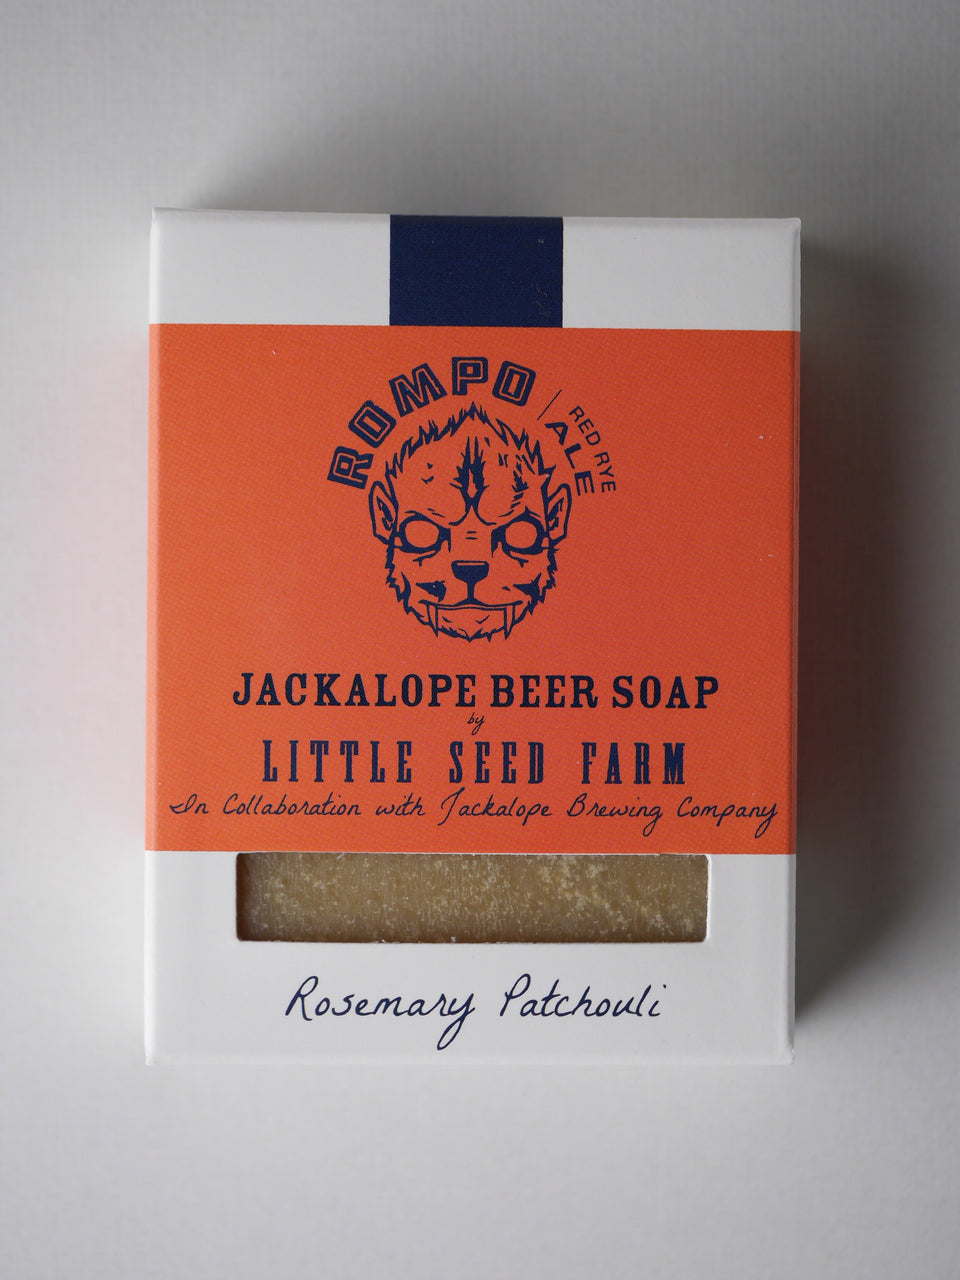 Rompo Beer Soap Bar (Rosemary Patchouli) Soap Little Seed Farm - der ZEITGEIST